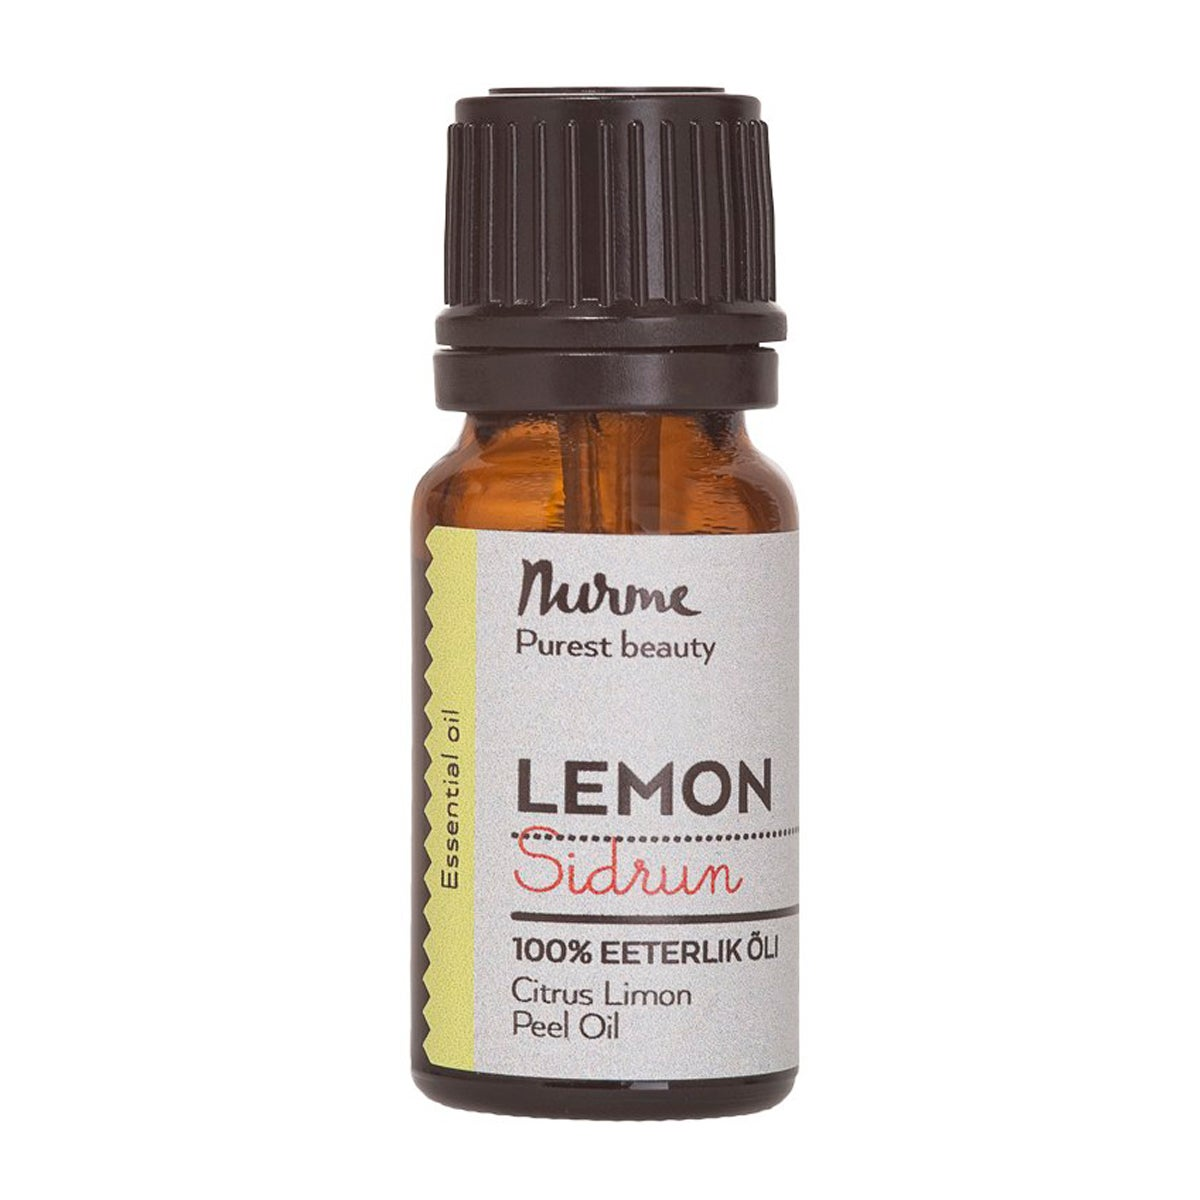 Nurme Lemon Essential Oil